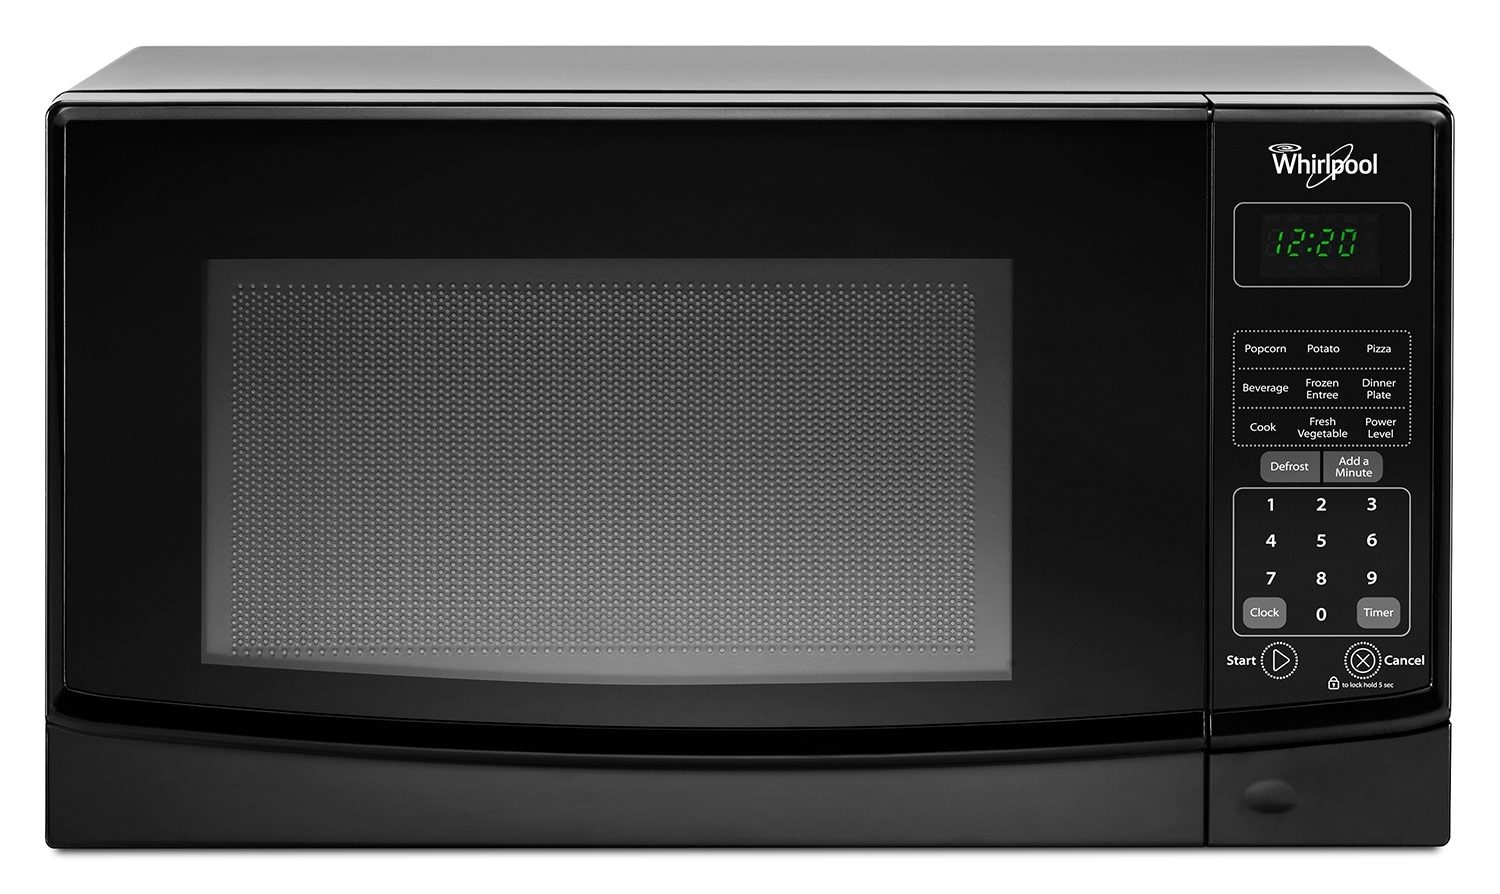 whirlpool black microwave cu ft wmcab with hotte ikea whirlpool. Black Bedroom Furniture Sets. Home Design Ideas